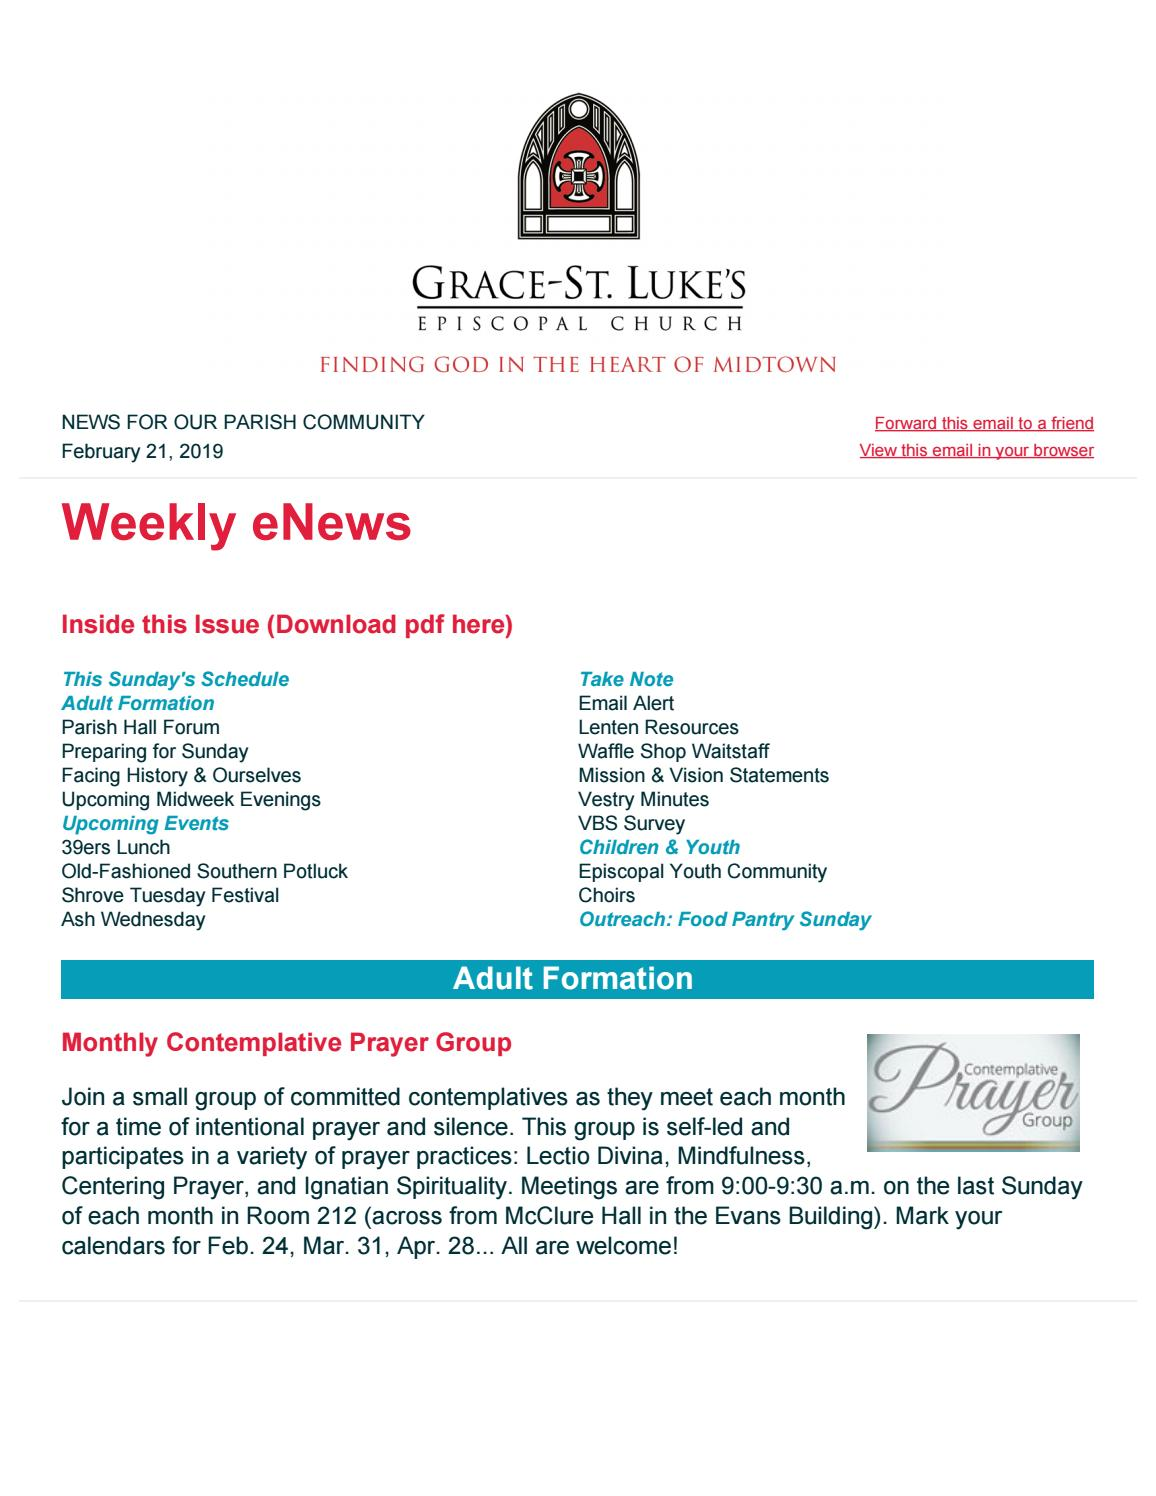 eNews for January 21, 2019 by Grace-St  Luke's Episcopal Church - issuu